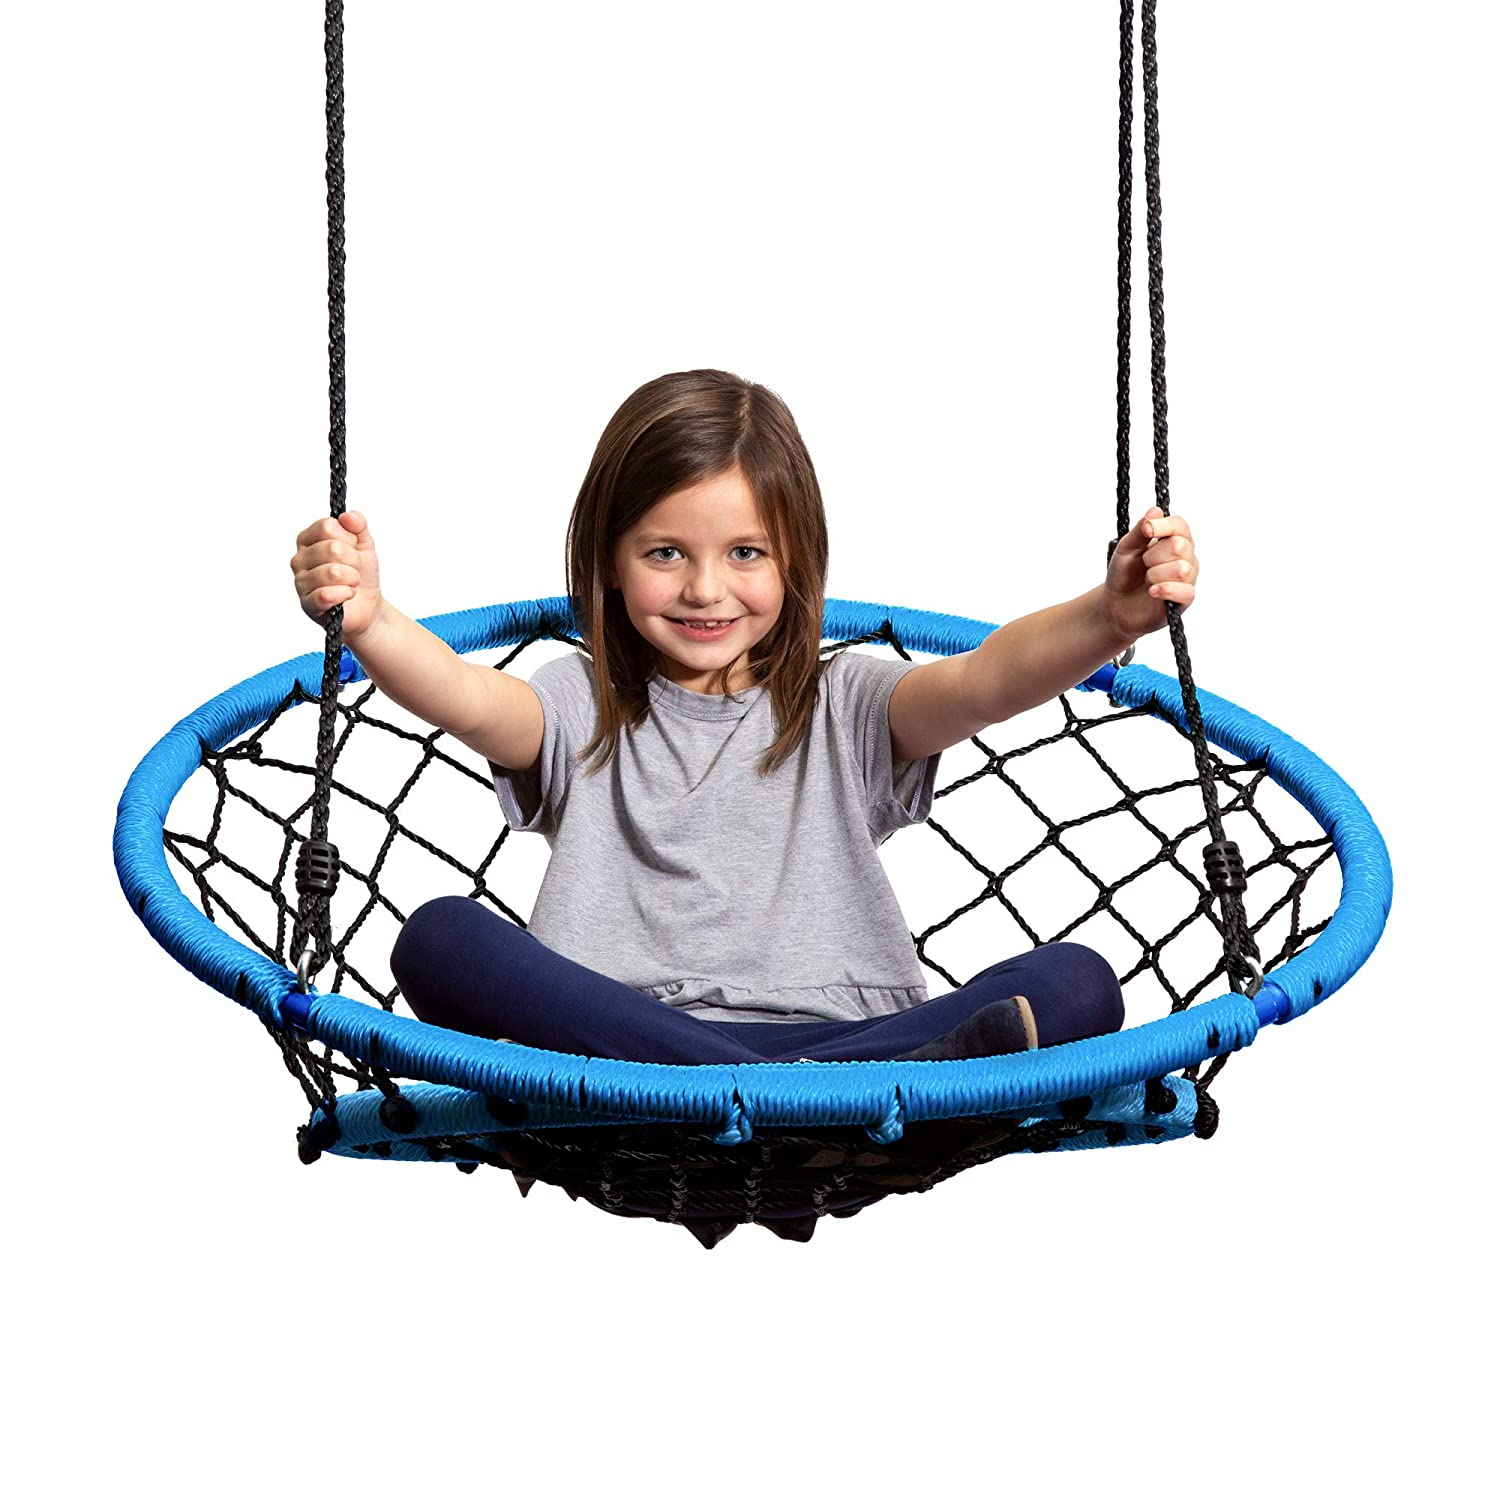 JumpOff Jo - Little Jo's Web Chair Swing - Round Rope Net Hammock for Kids and Adults - Hang from Tree, Porch, Swing Set or Inside - Ages 6+ - Blue